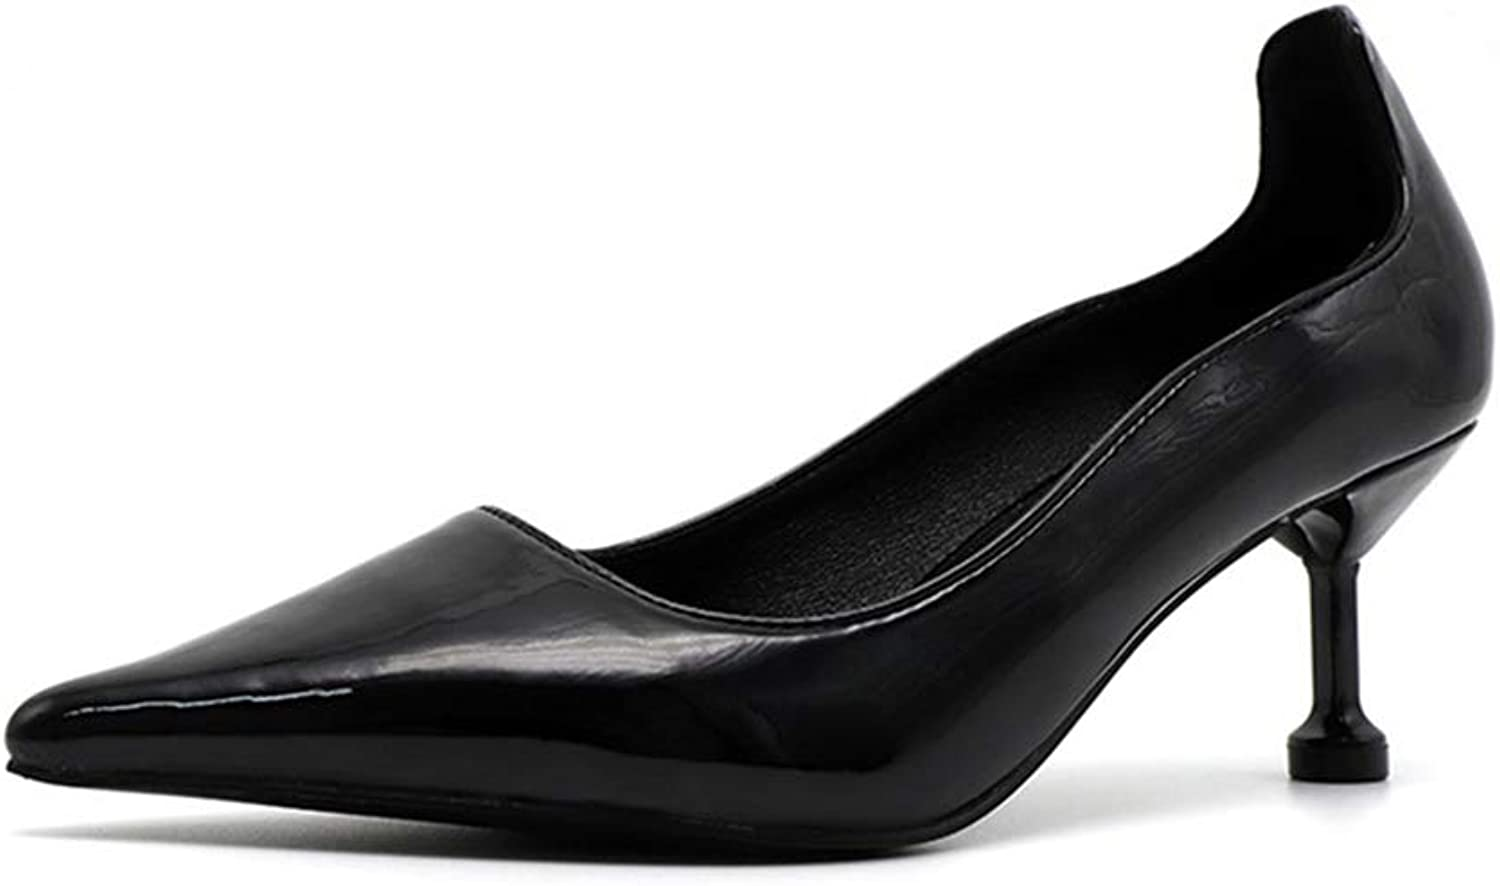 Sam Carle Women Pumps, Kitten Heel Pointed Toe Solid color Slip On Comfortable Office Pumps